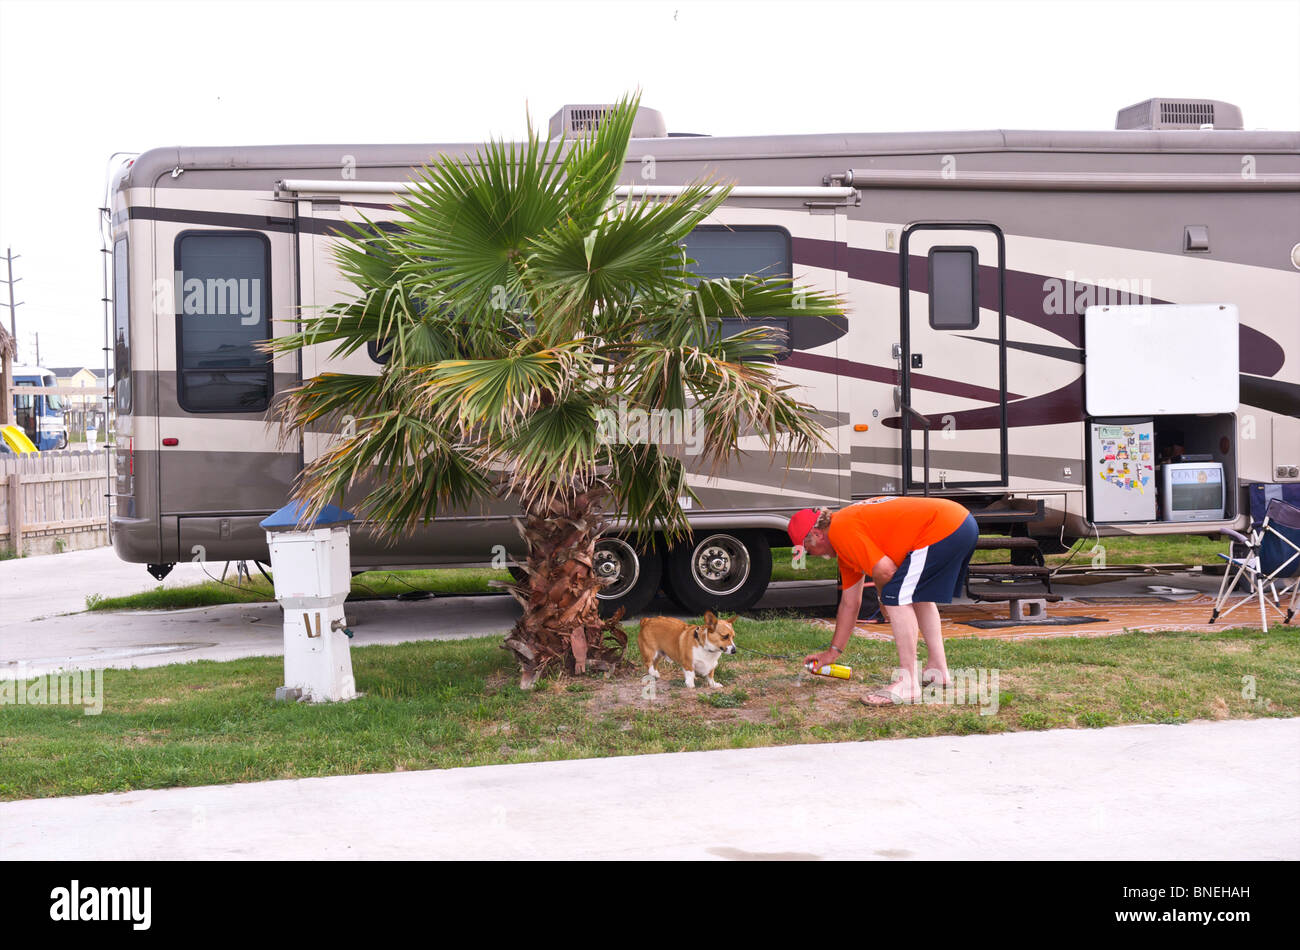 Camper with campervan RV on a campsite camping in Galveston, Texas, USA - Stock Image